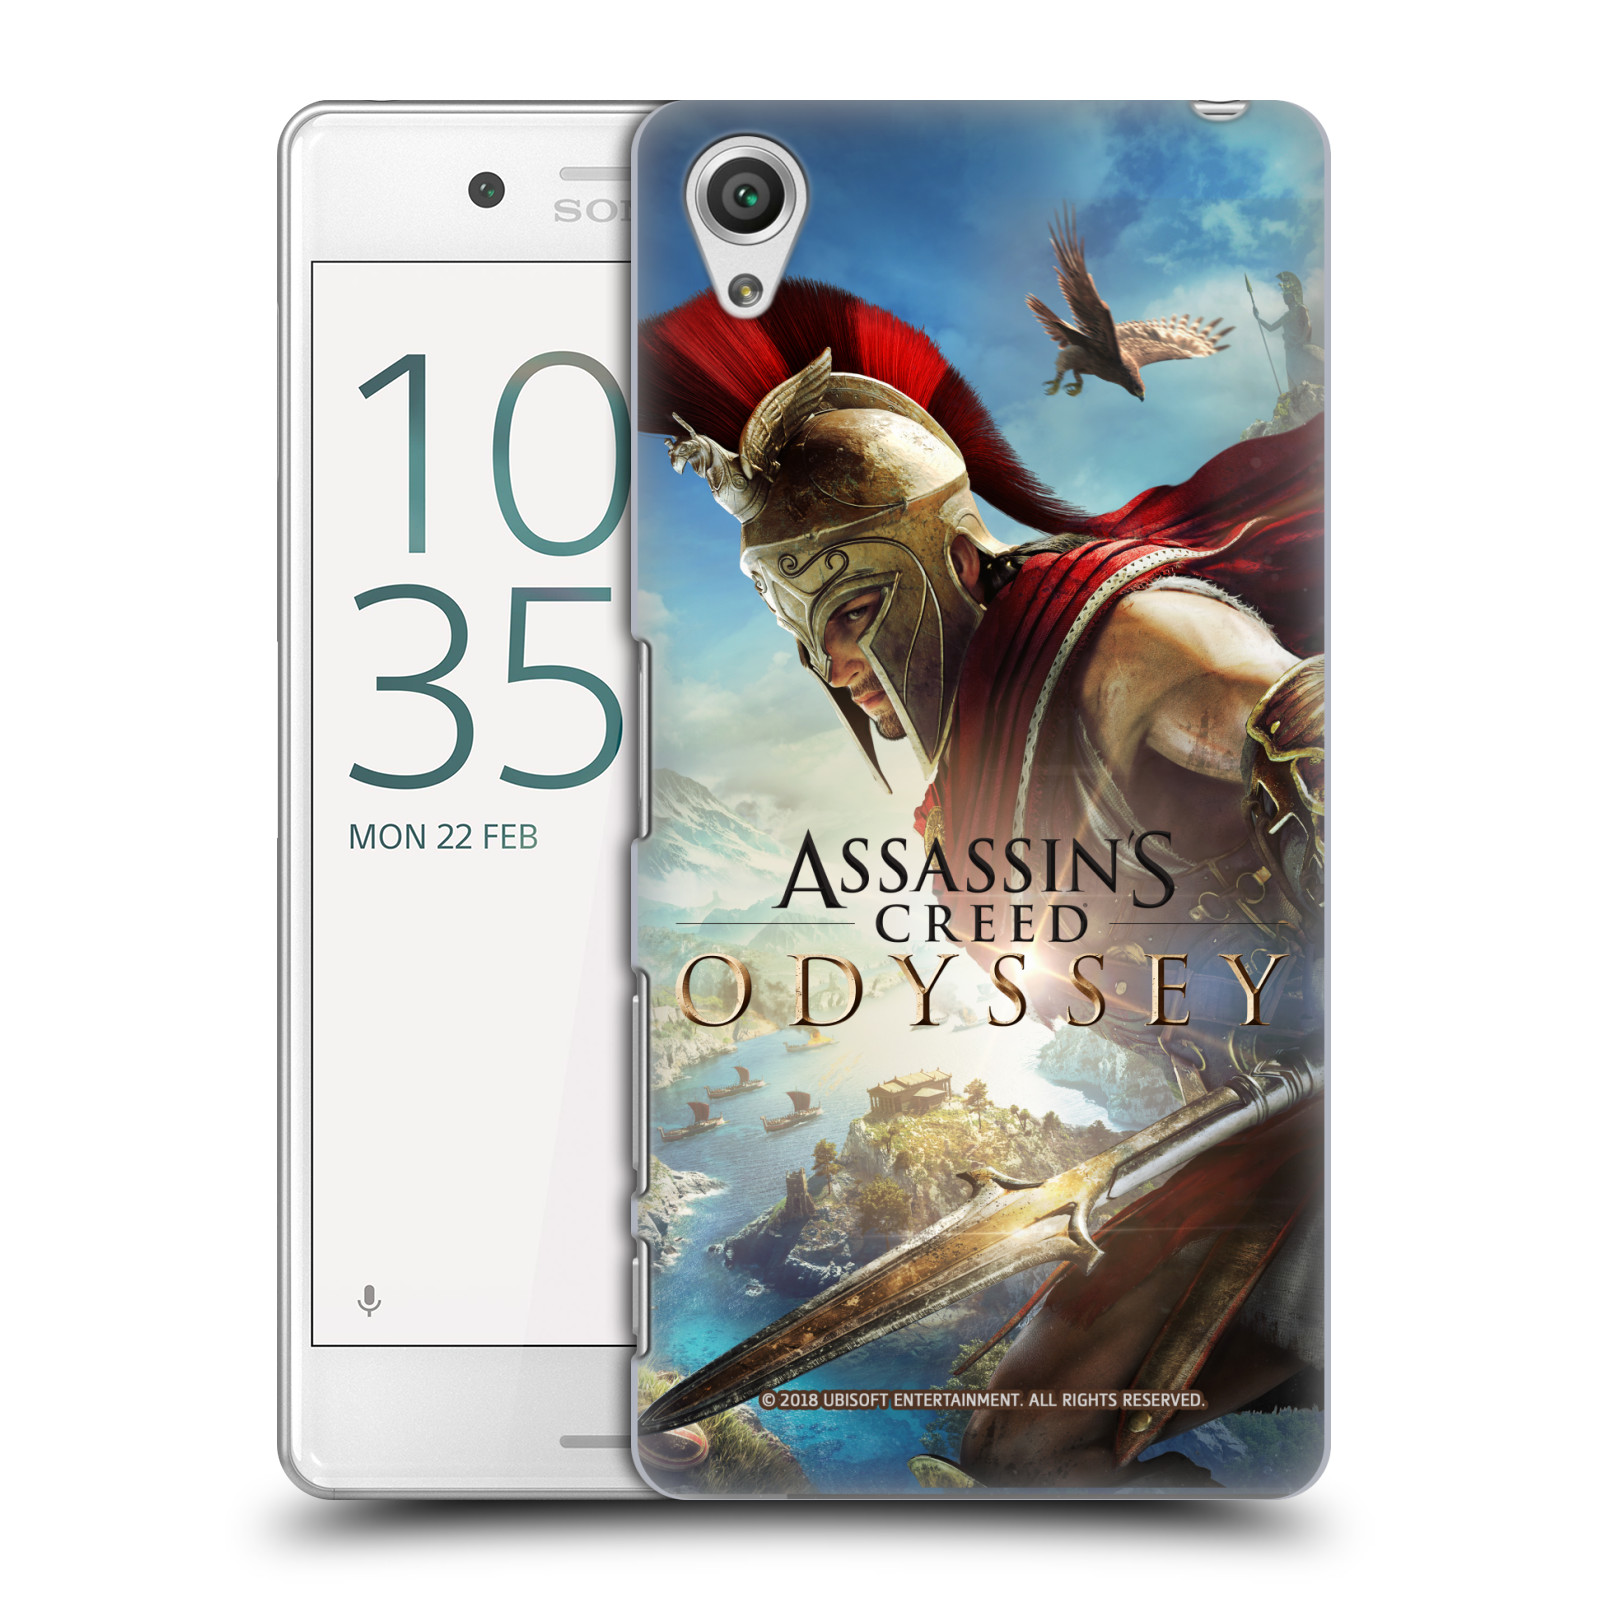 Pouzdro na mobil Sony Xperia X PERFORMANCE - HEAD CASE - Assassins Creed Odyssey Alexios a Ikaros